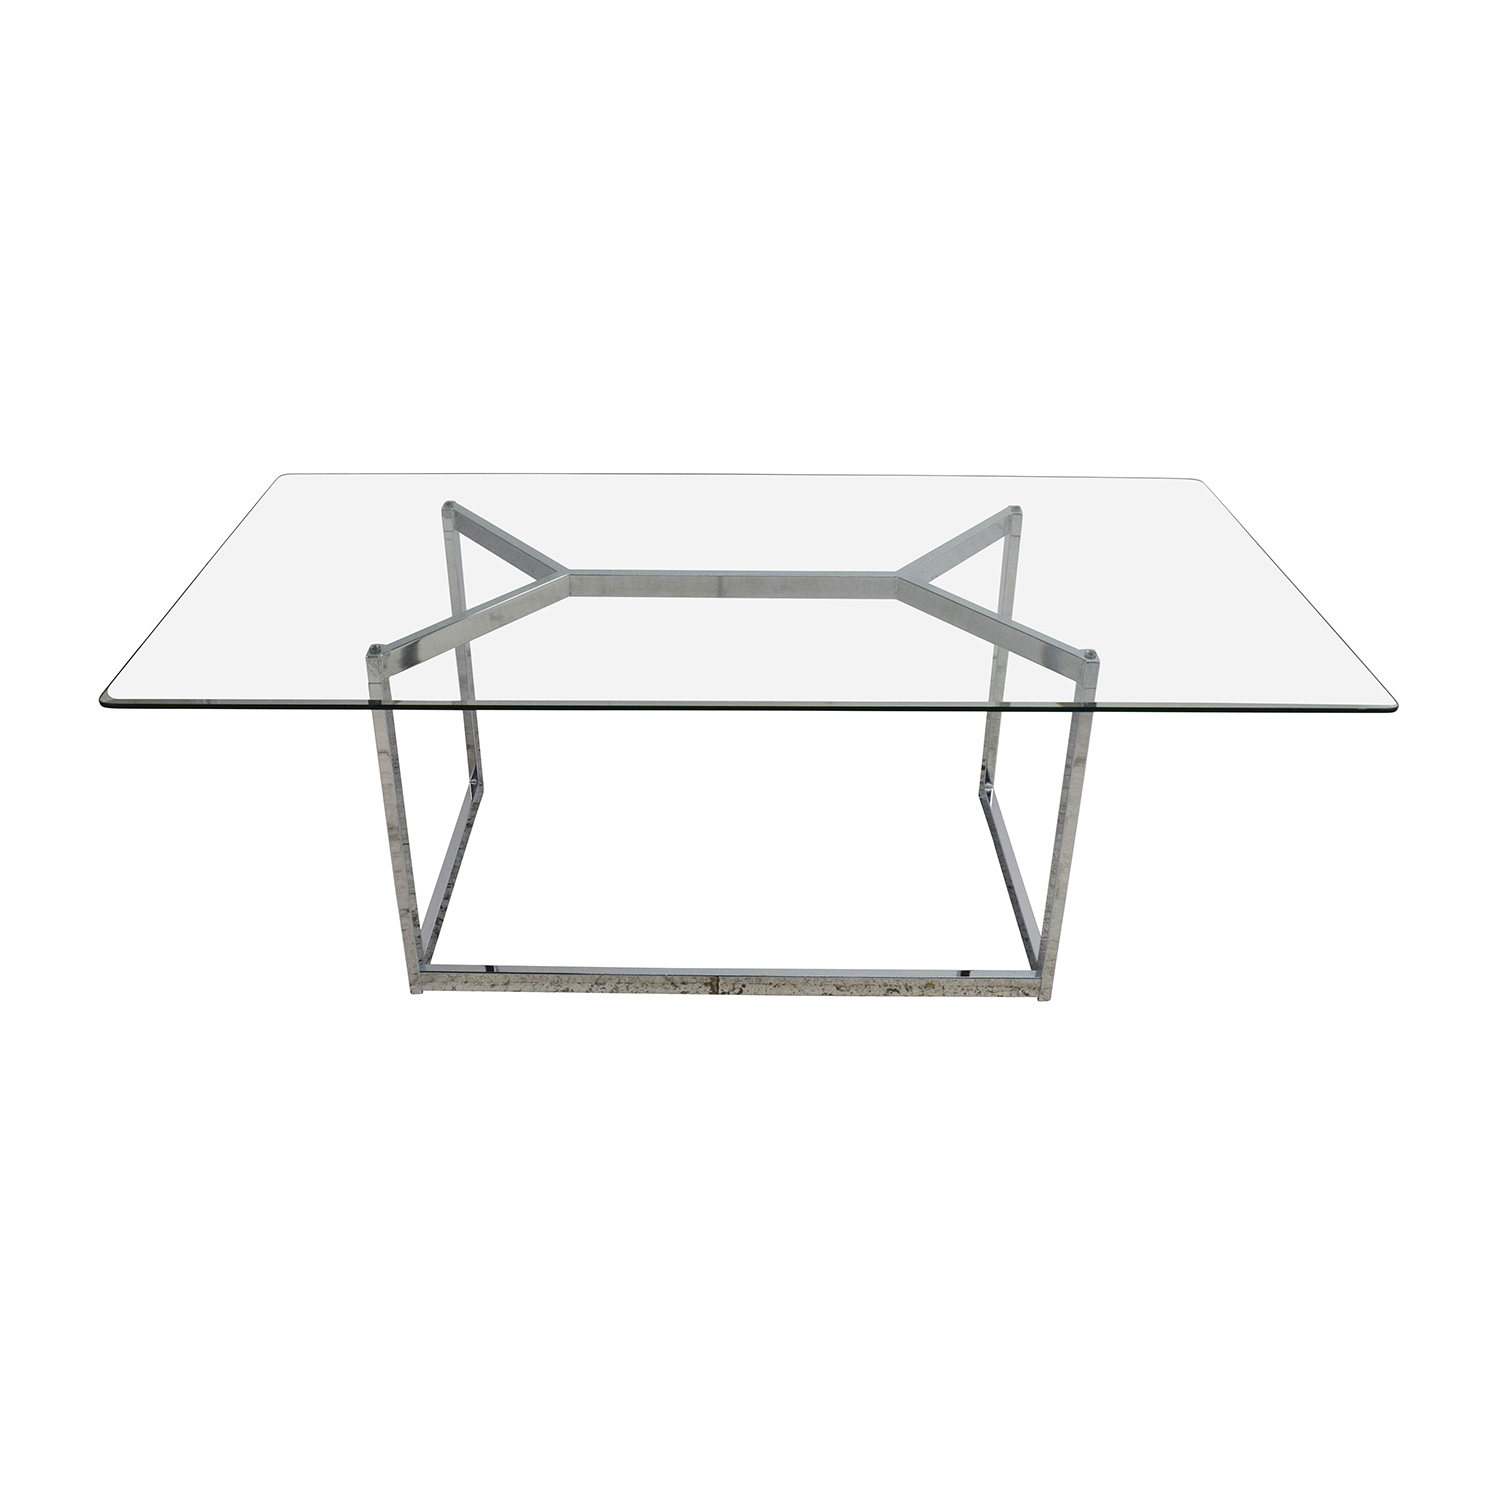 CB2 Tesso Chrome and Glass Dining Table sale